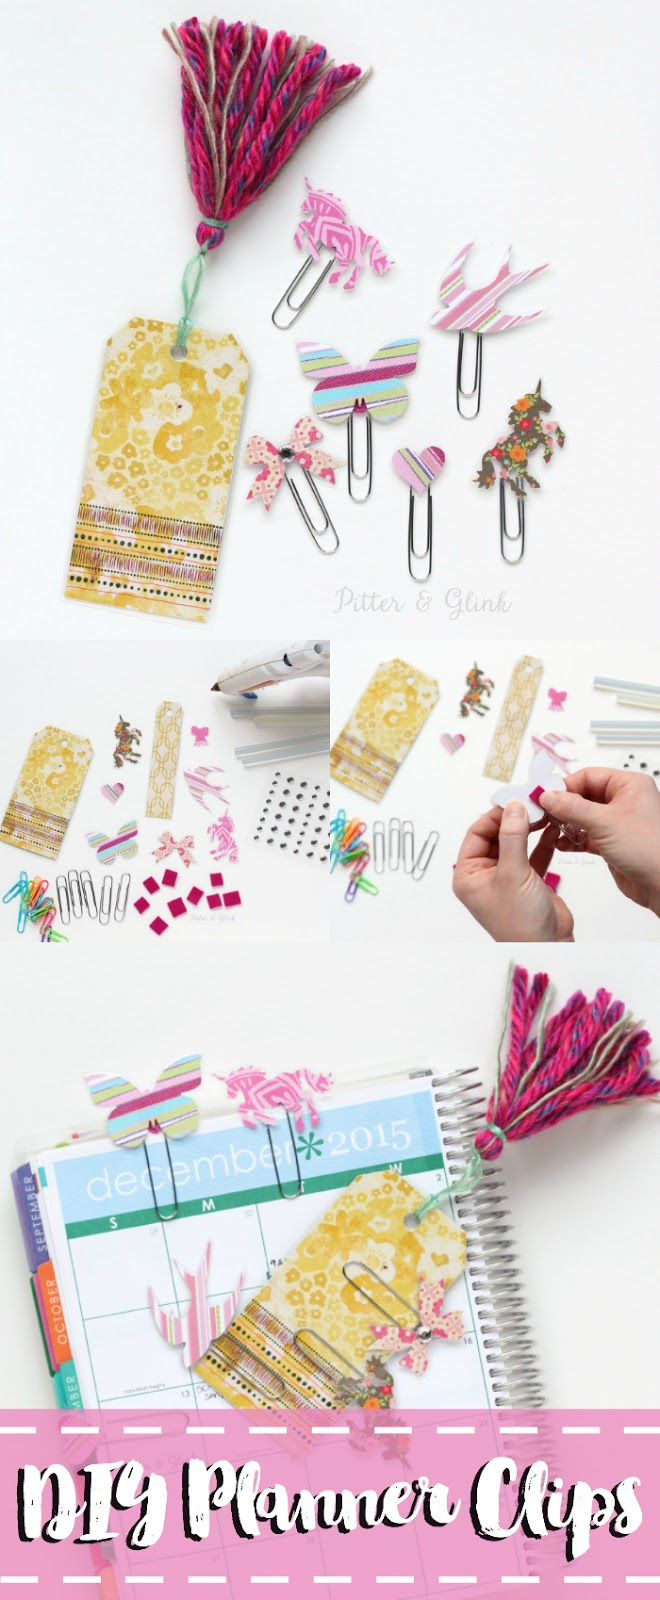 Learn how to easily make inexpensive handmade planner clips using scrapbook paper! www.pitterandglink.com